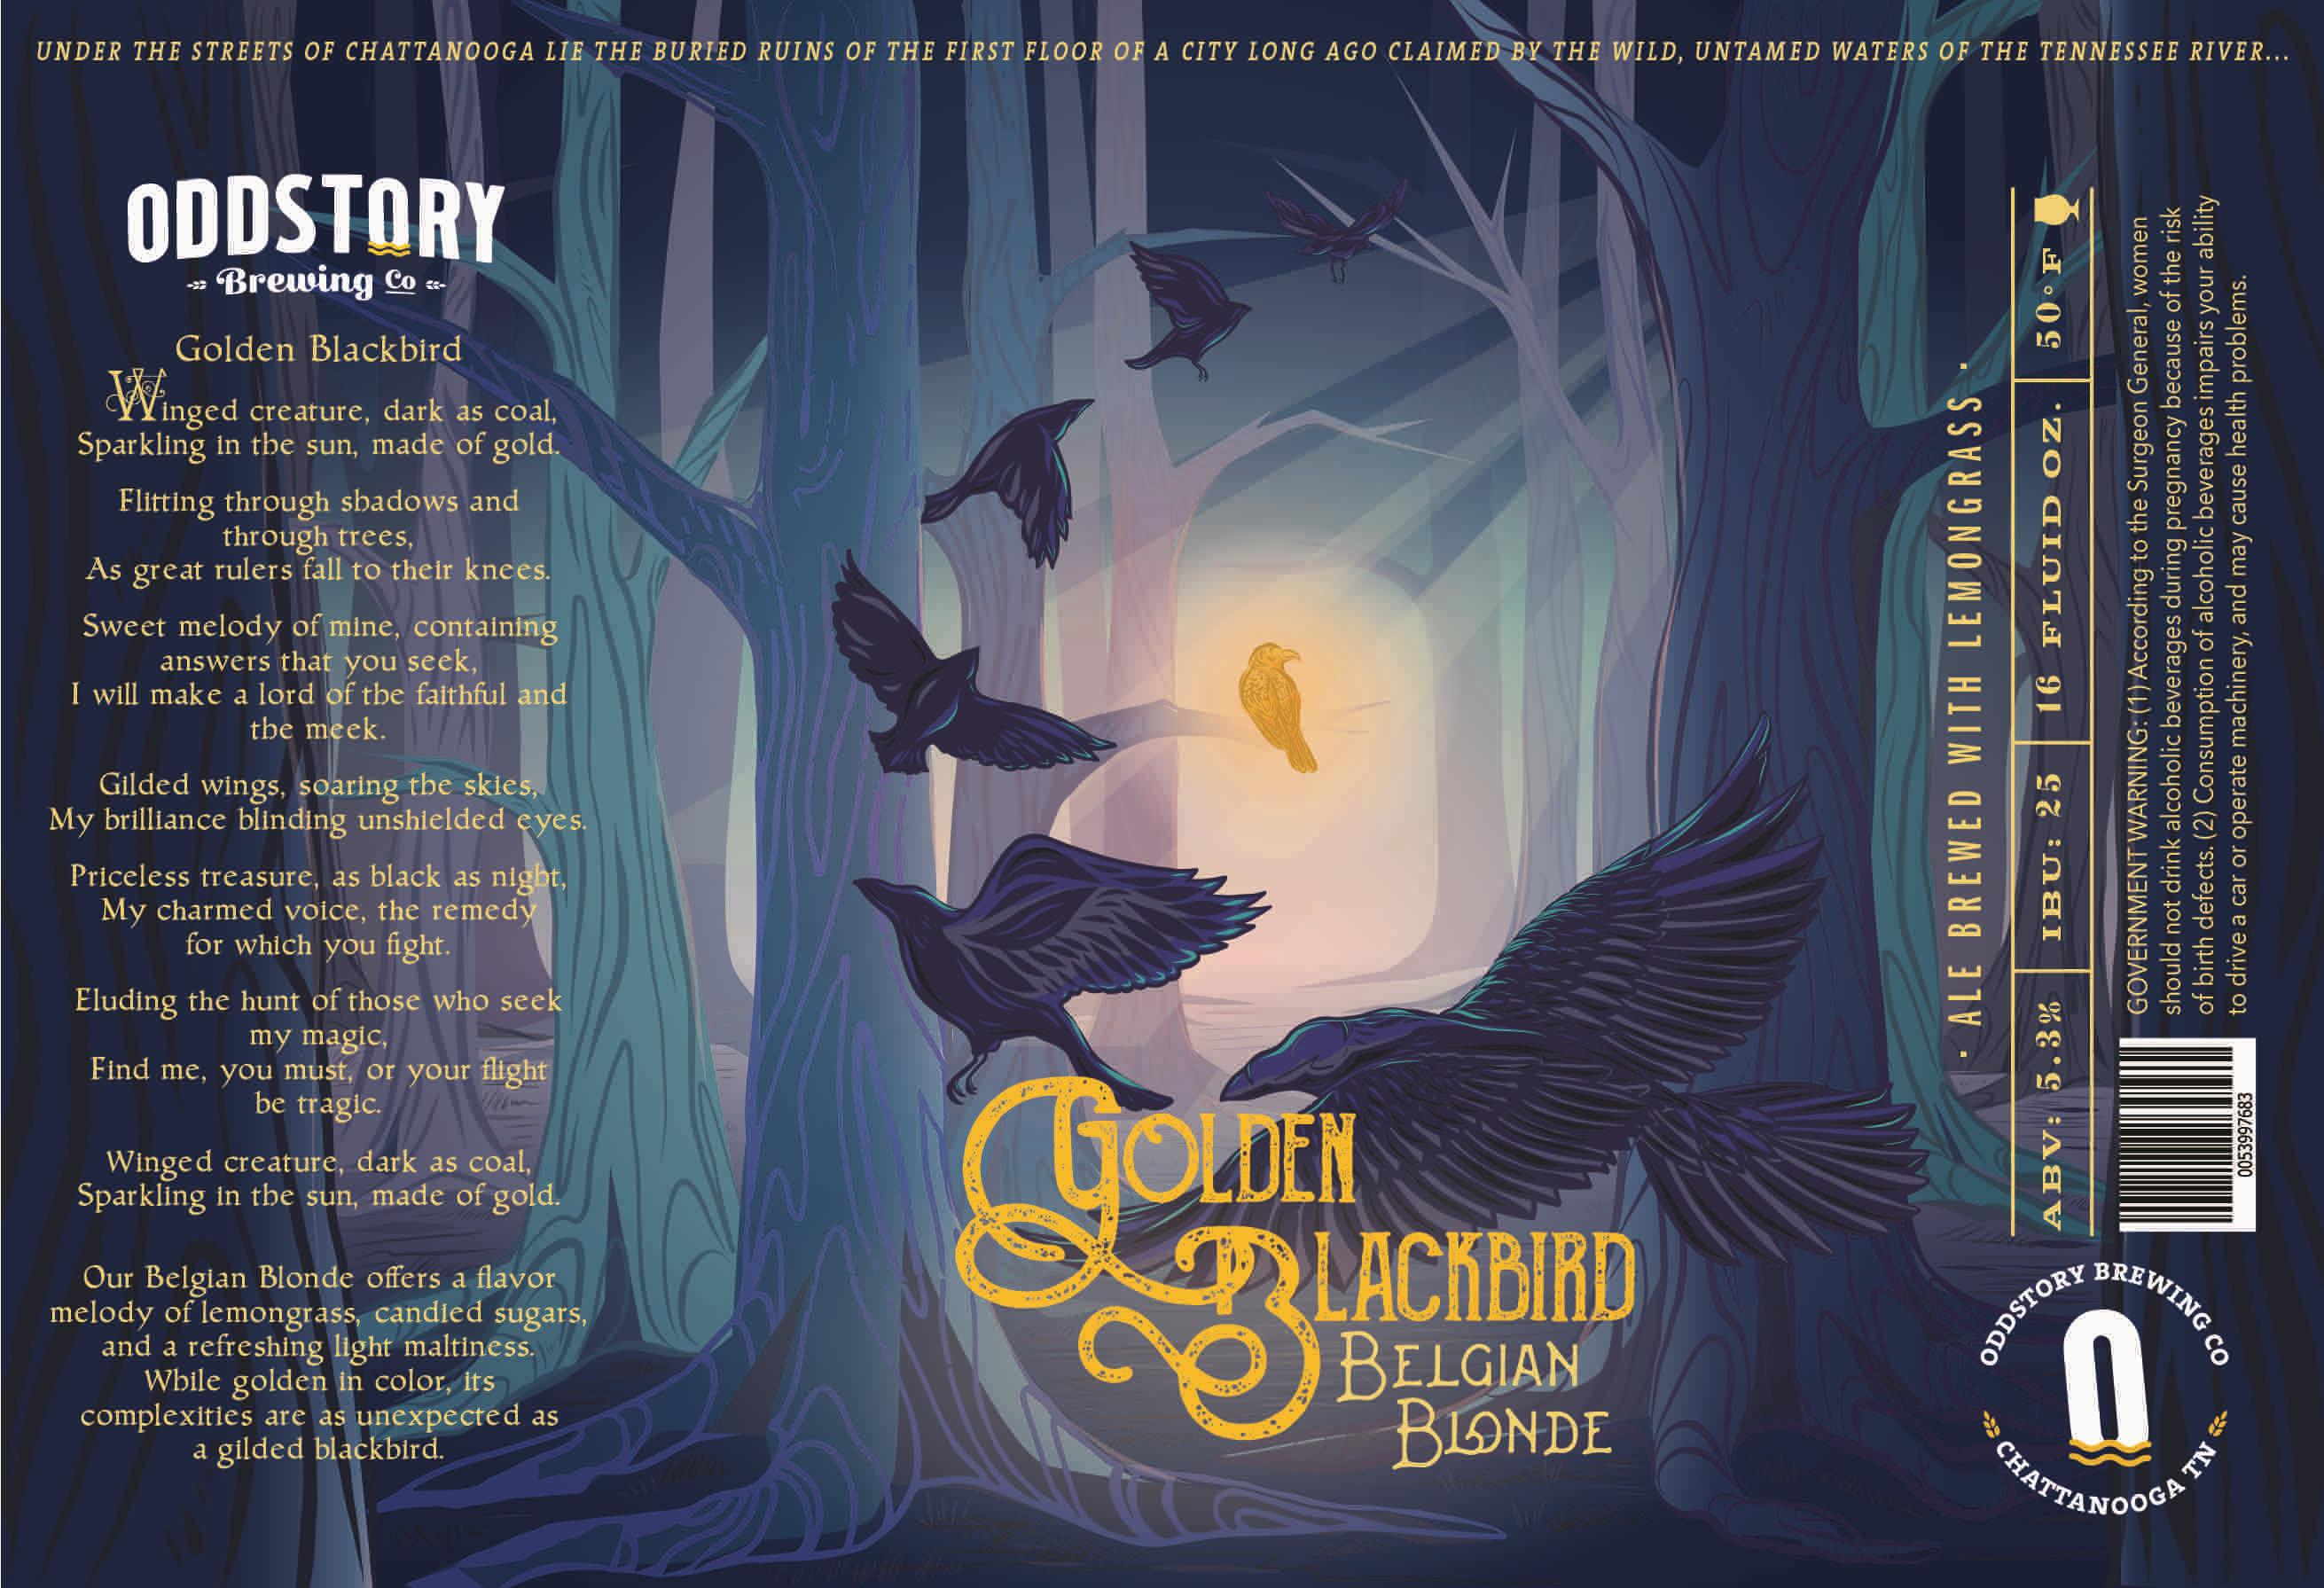 Oddstory Brewing Company Golden Blackbird Belgian Blonde